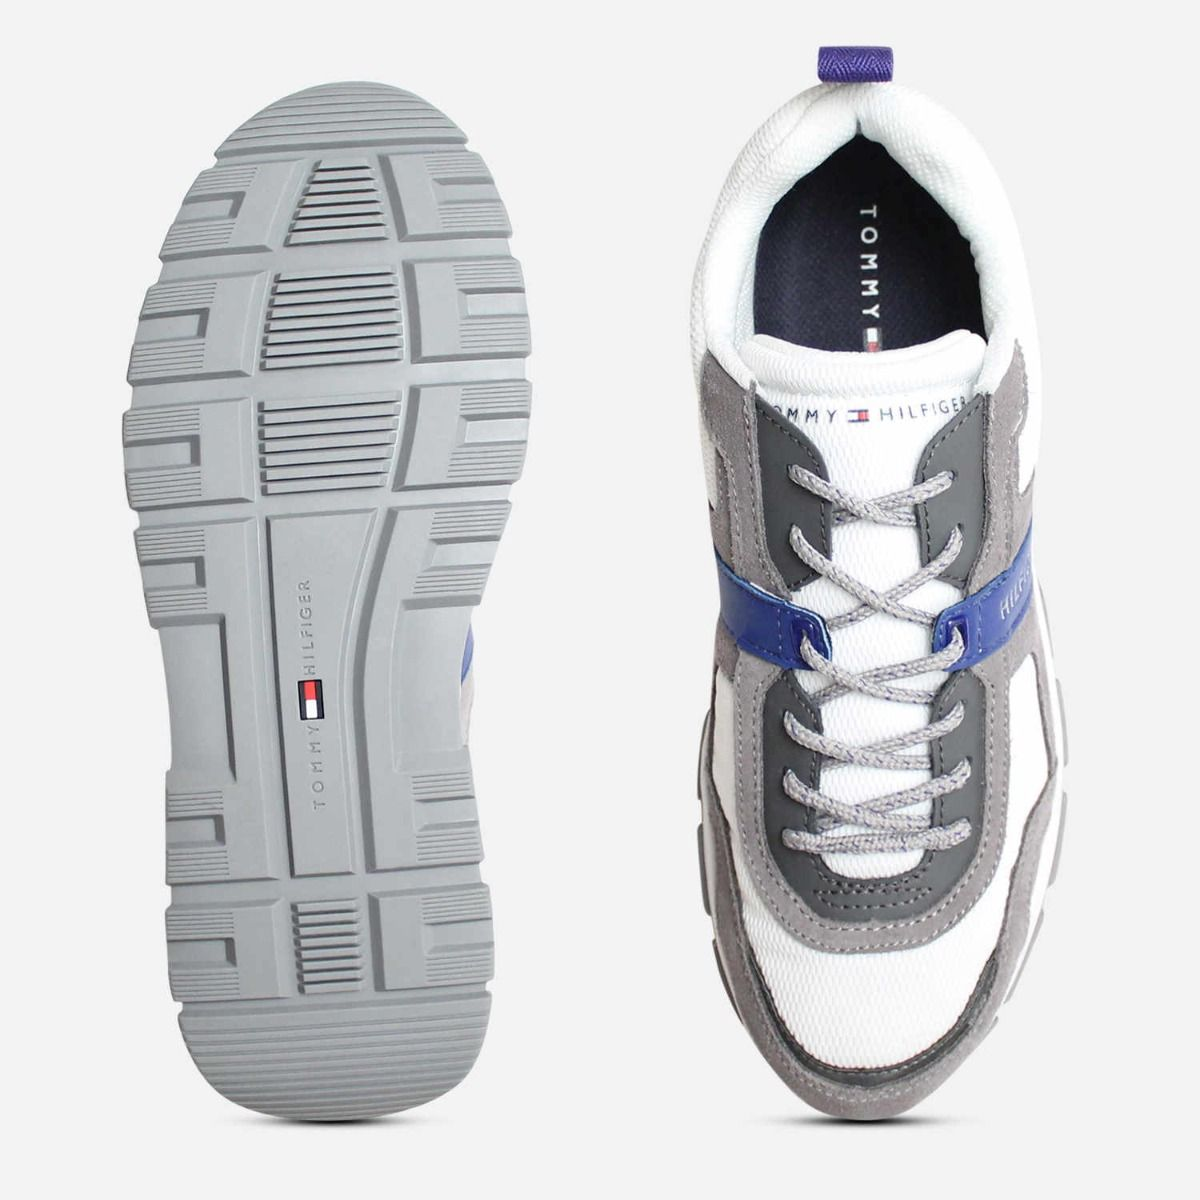 New Tommy Hilfiger Designer Sneakers in